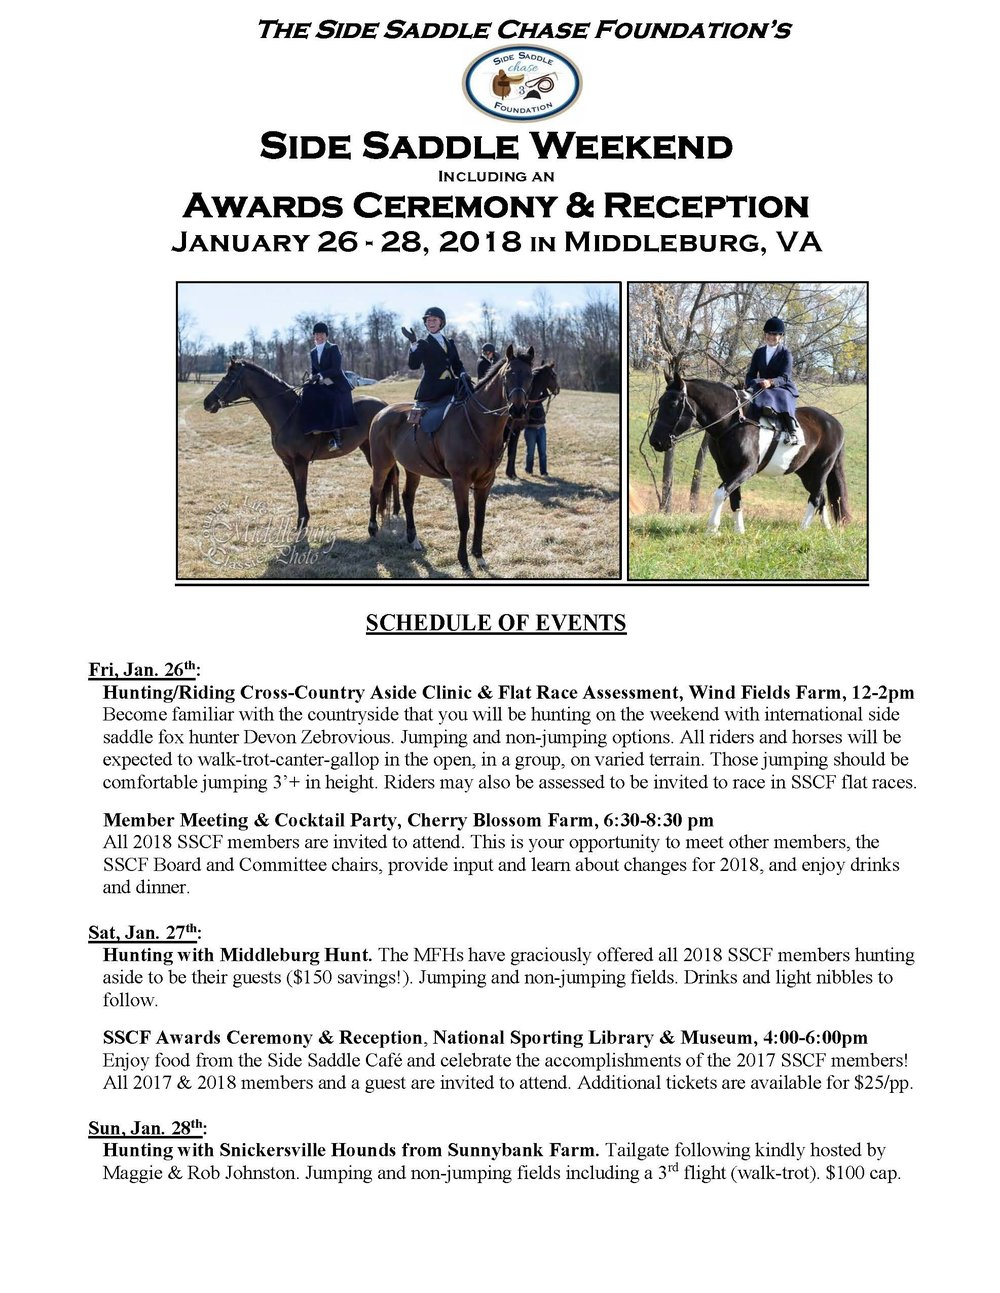 2018 SSCF Hunting Weekend Award Reception Registration Form_final_Page_01.jpg